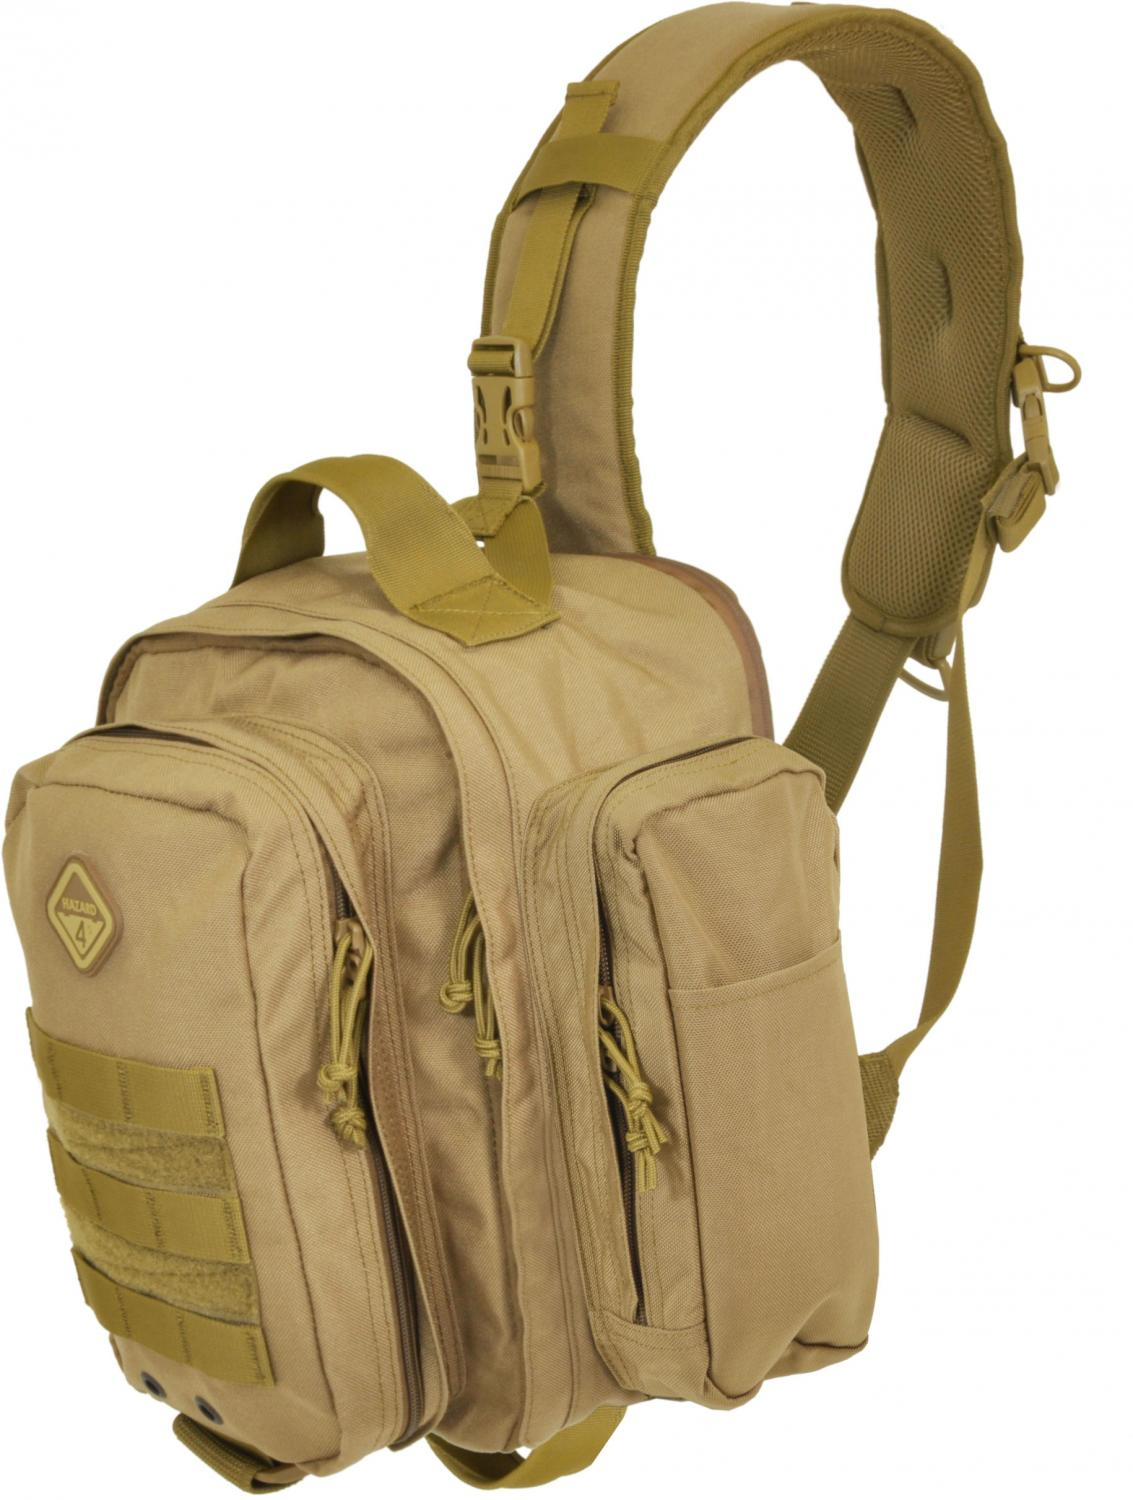 Hazard 4 Evac Watson Lumbar/Chest Sling, Coyote